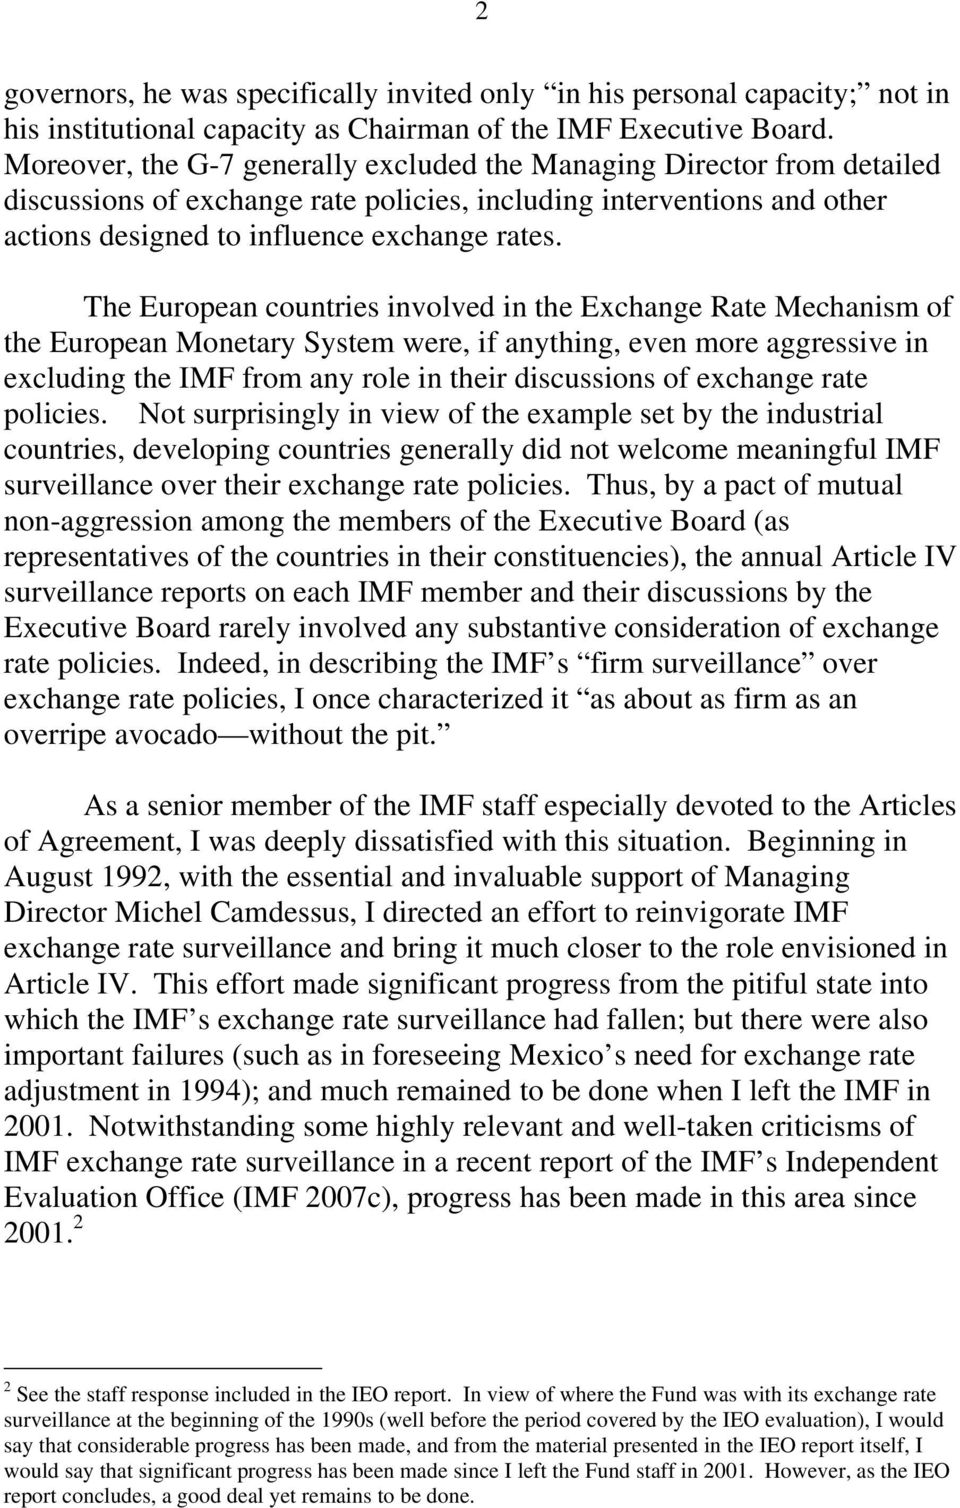 The European countries involved in the Exchange Rate Mechanism of the European Monetary System were, if anything, even more aggressive in excluding the IMF from any role in their discussions of